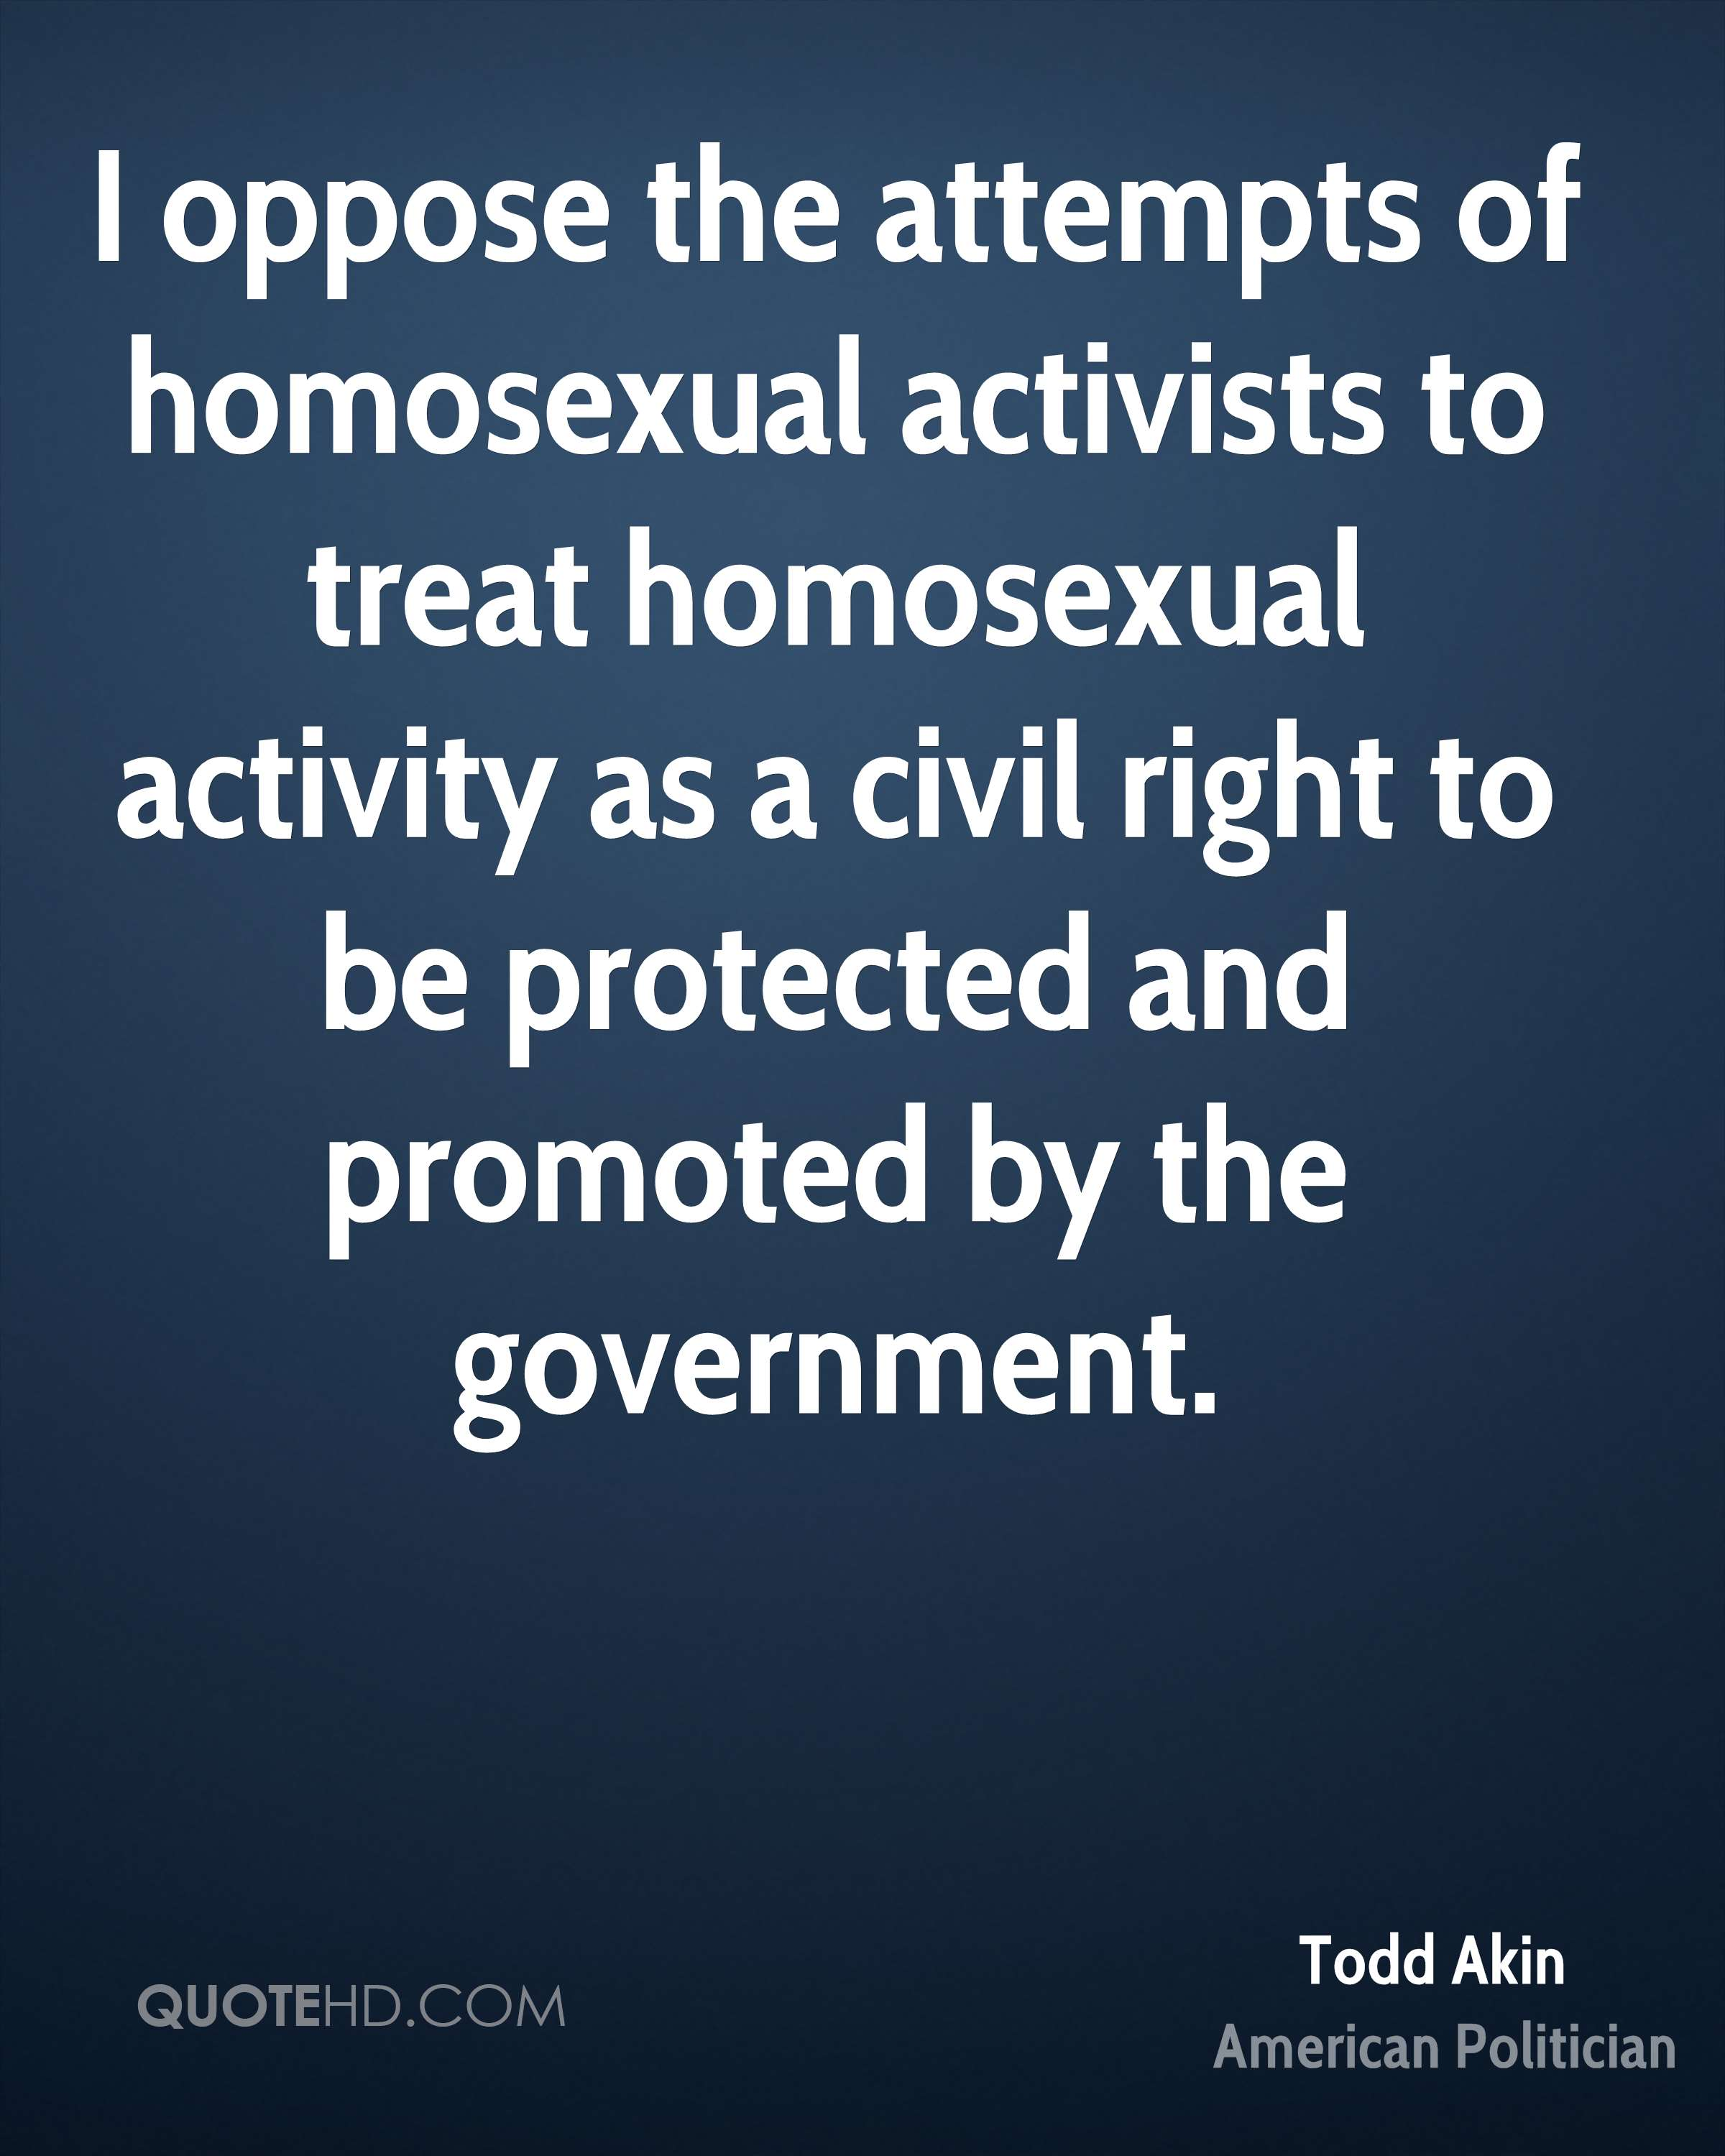 I oppose the attempts of homosexual activists to treat homosexual activity as a civil right to be protected and promoted by the government.